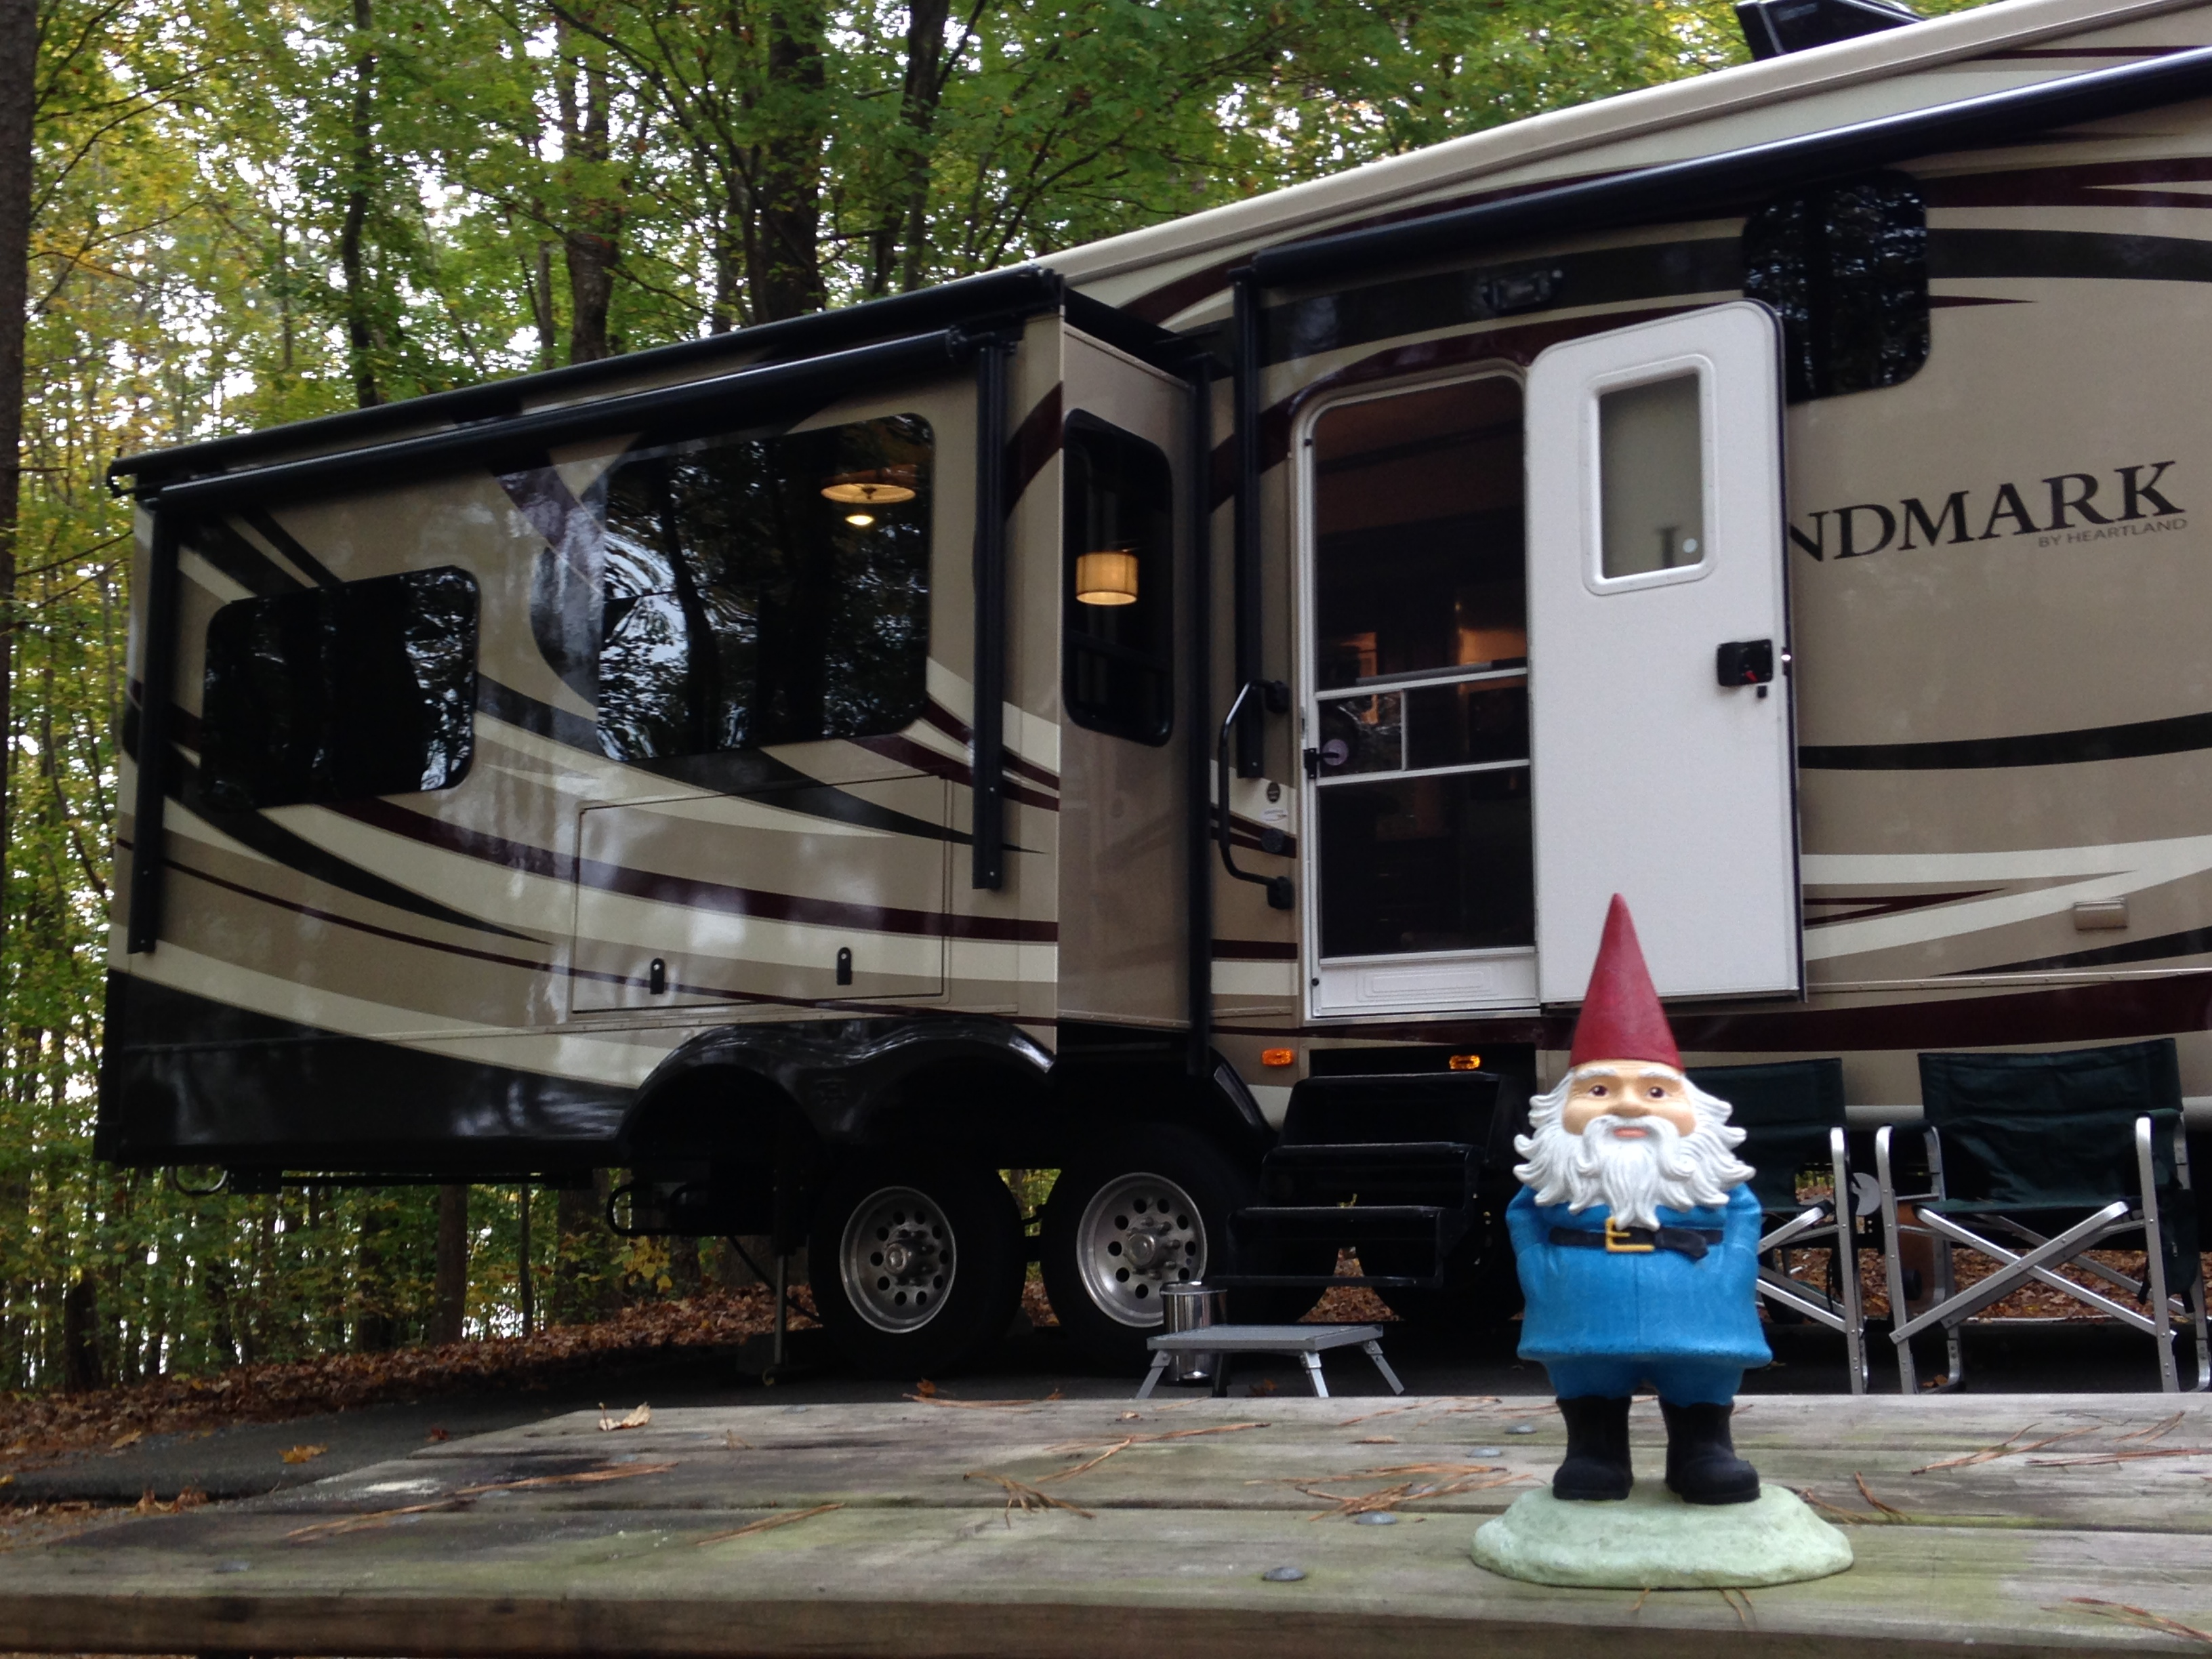 Gnome - Landmark - 2013-November - Waxhaw, NC